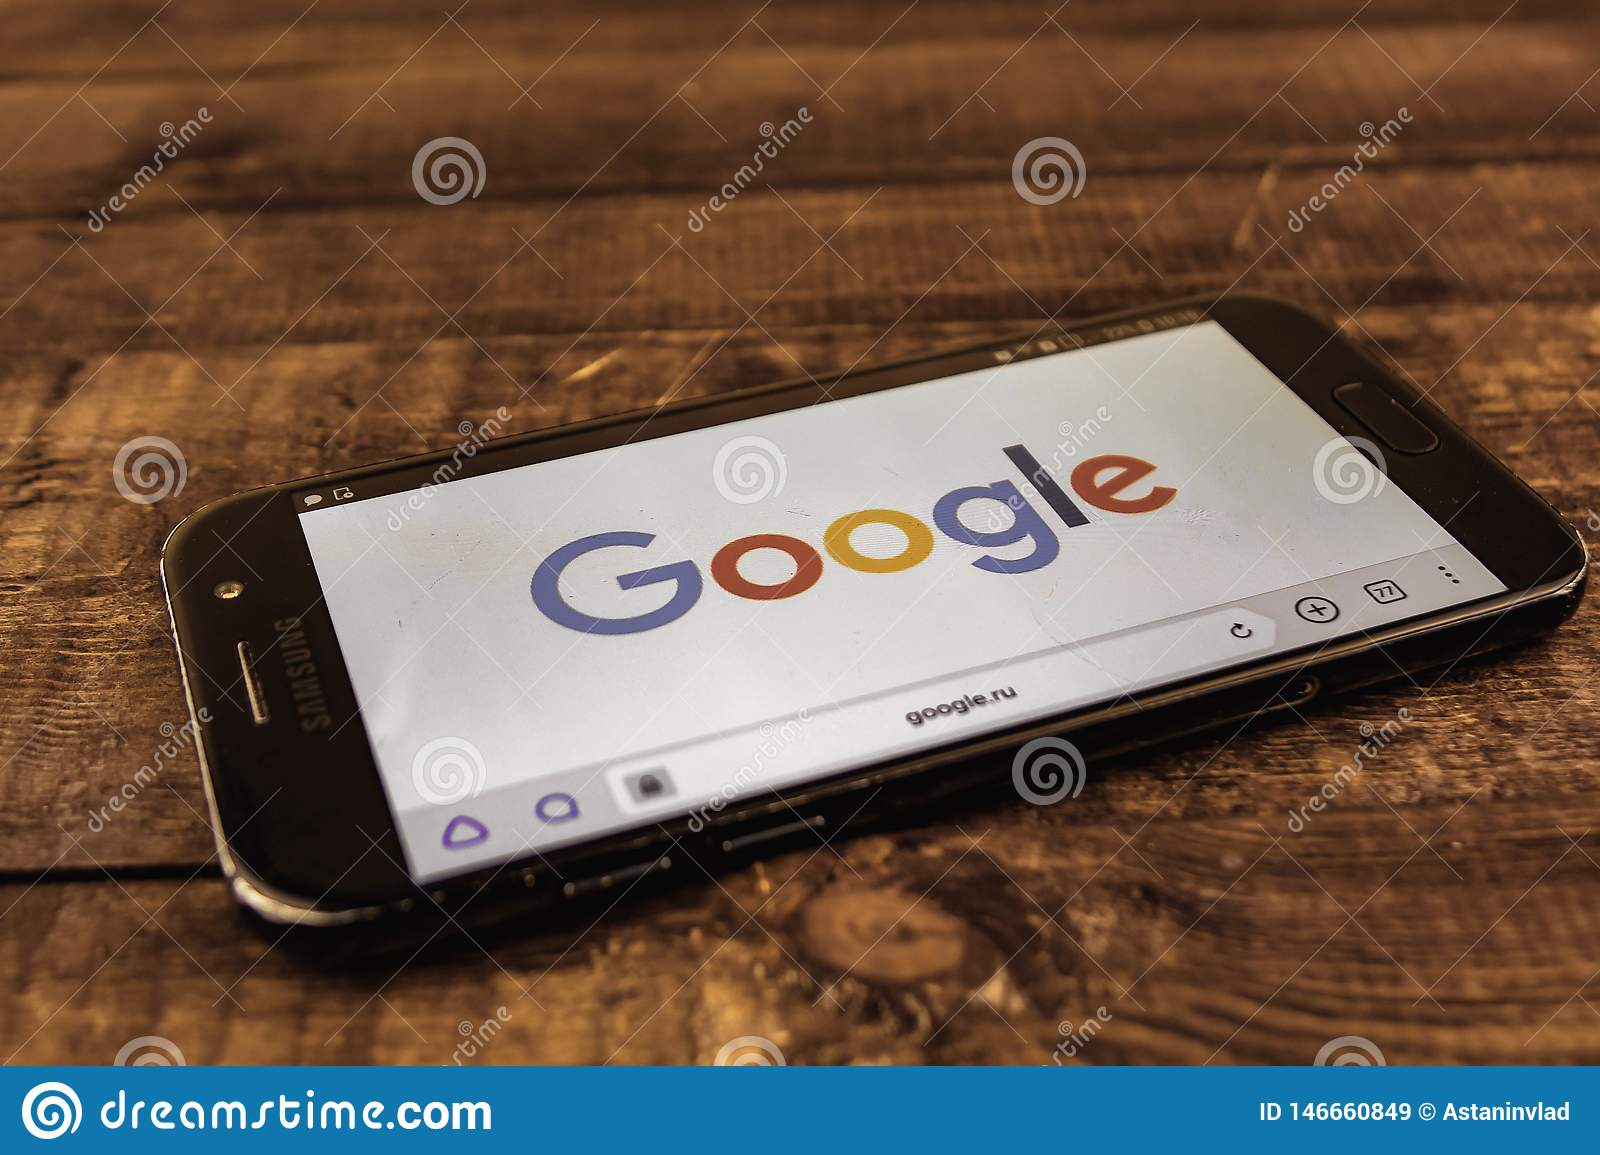 Voronezh. Russian Federation - may 3, 2019: Google logo on smartphone screen. Google is an American technology and online services